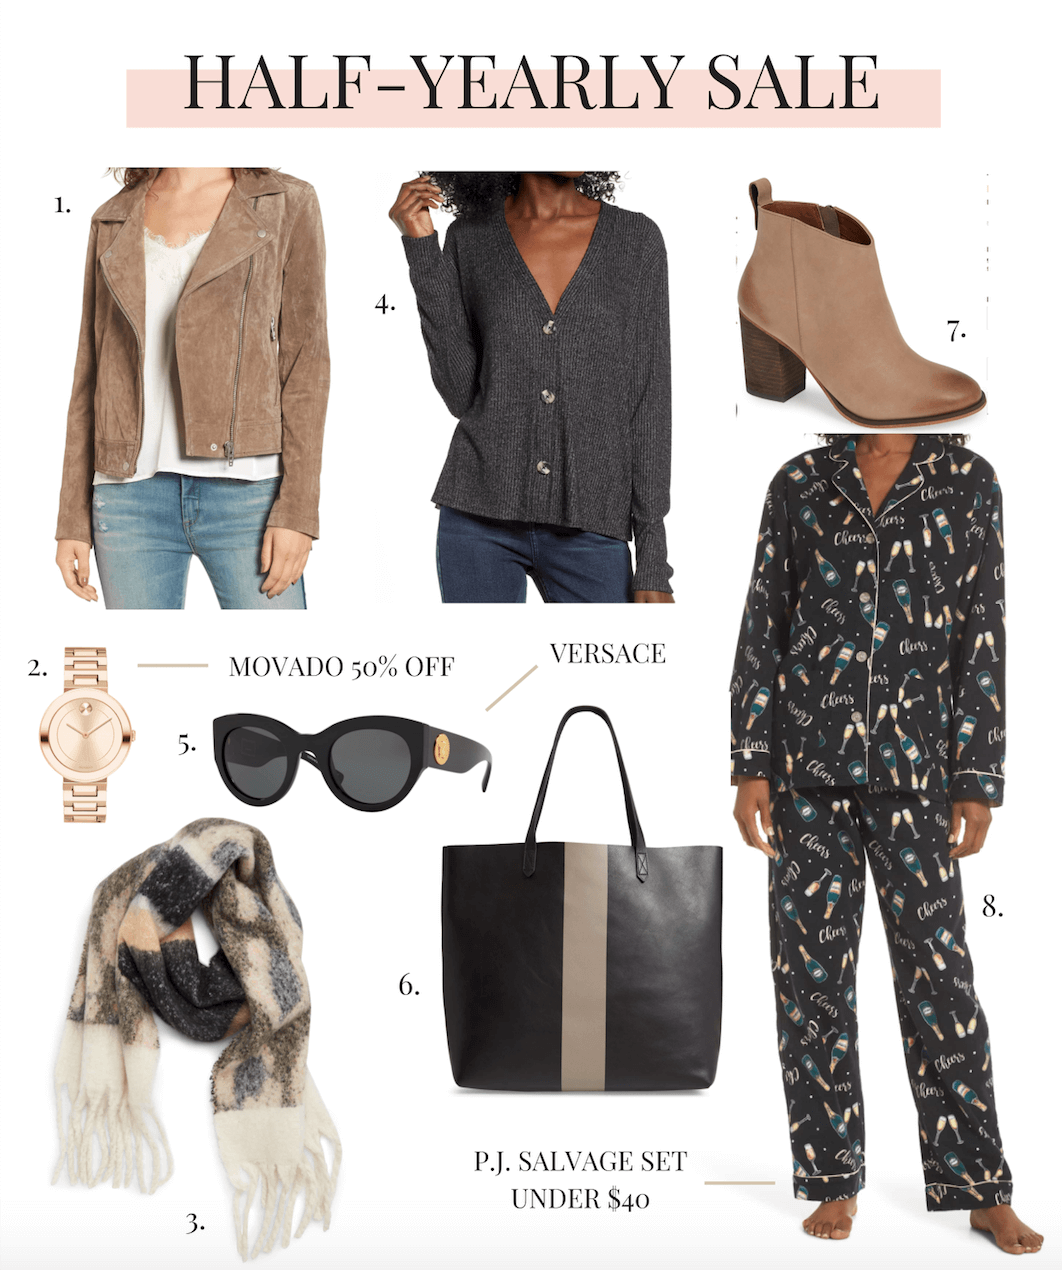 Nordstrom Half-Yearly Sale 2019 dates